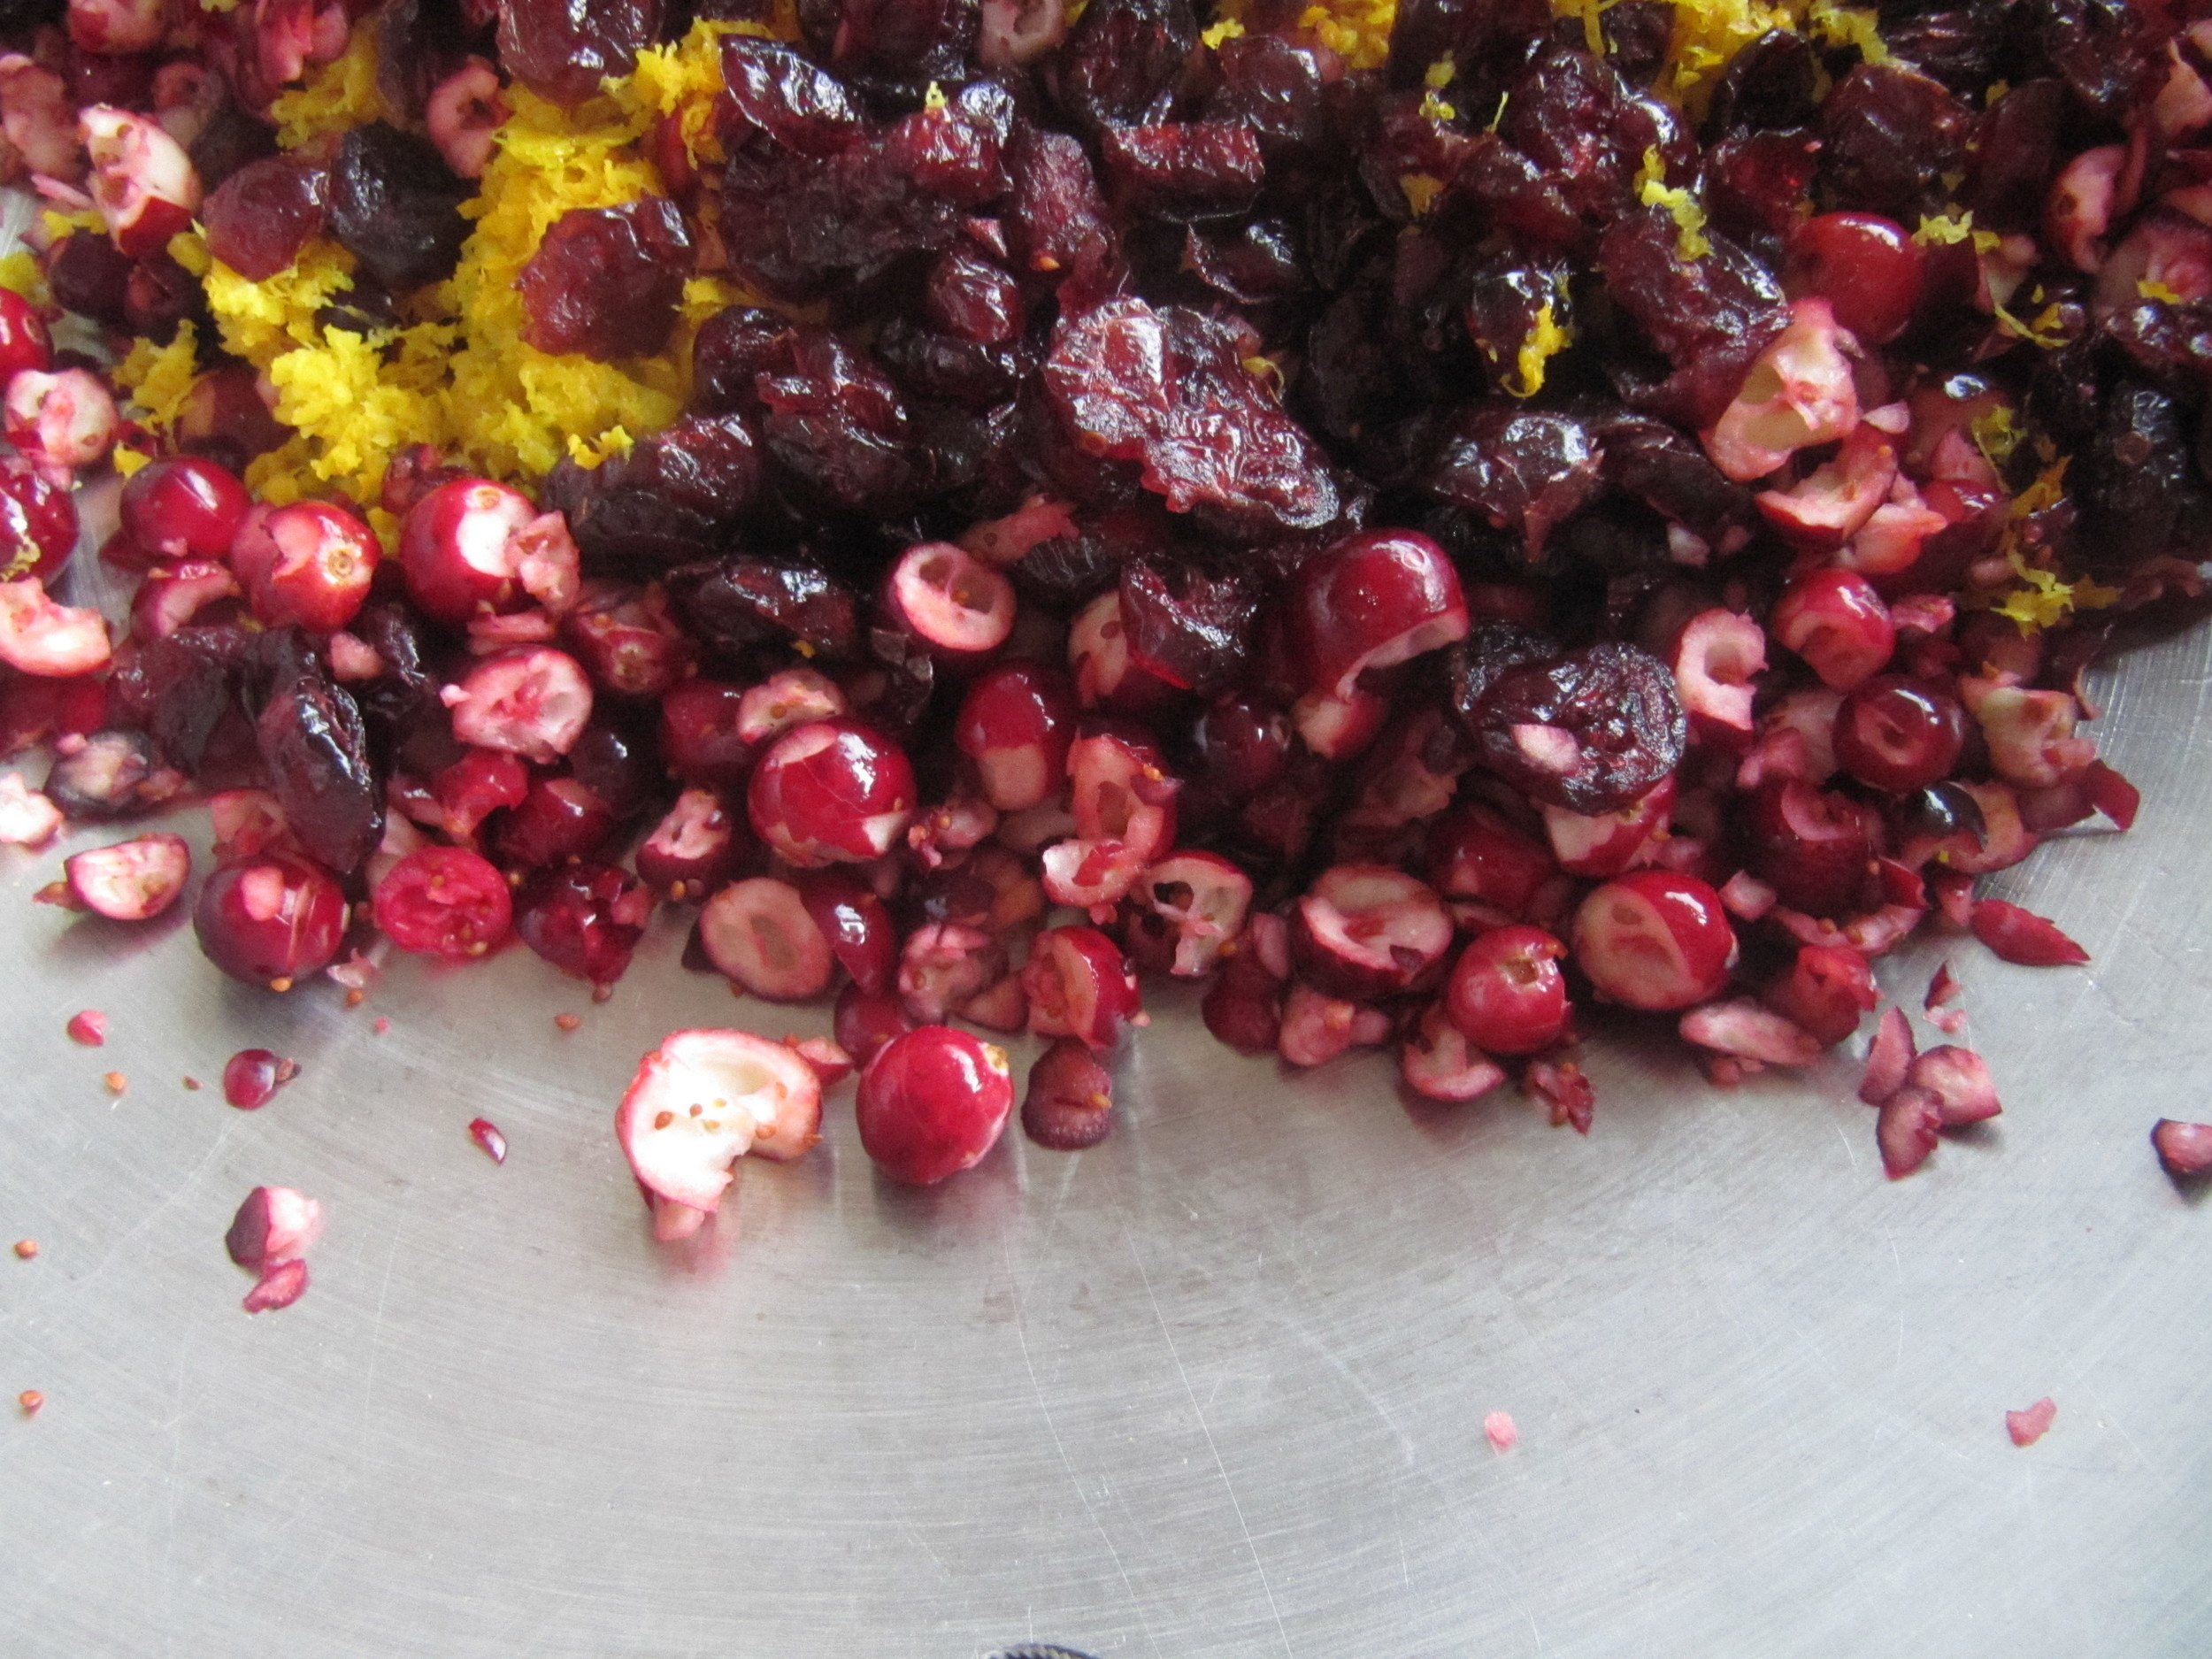 Chopped cranberries ready for fermentation